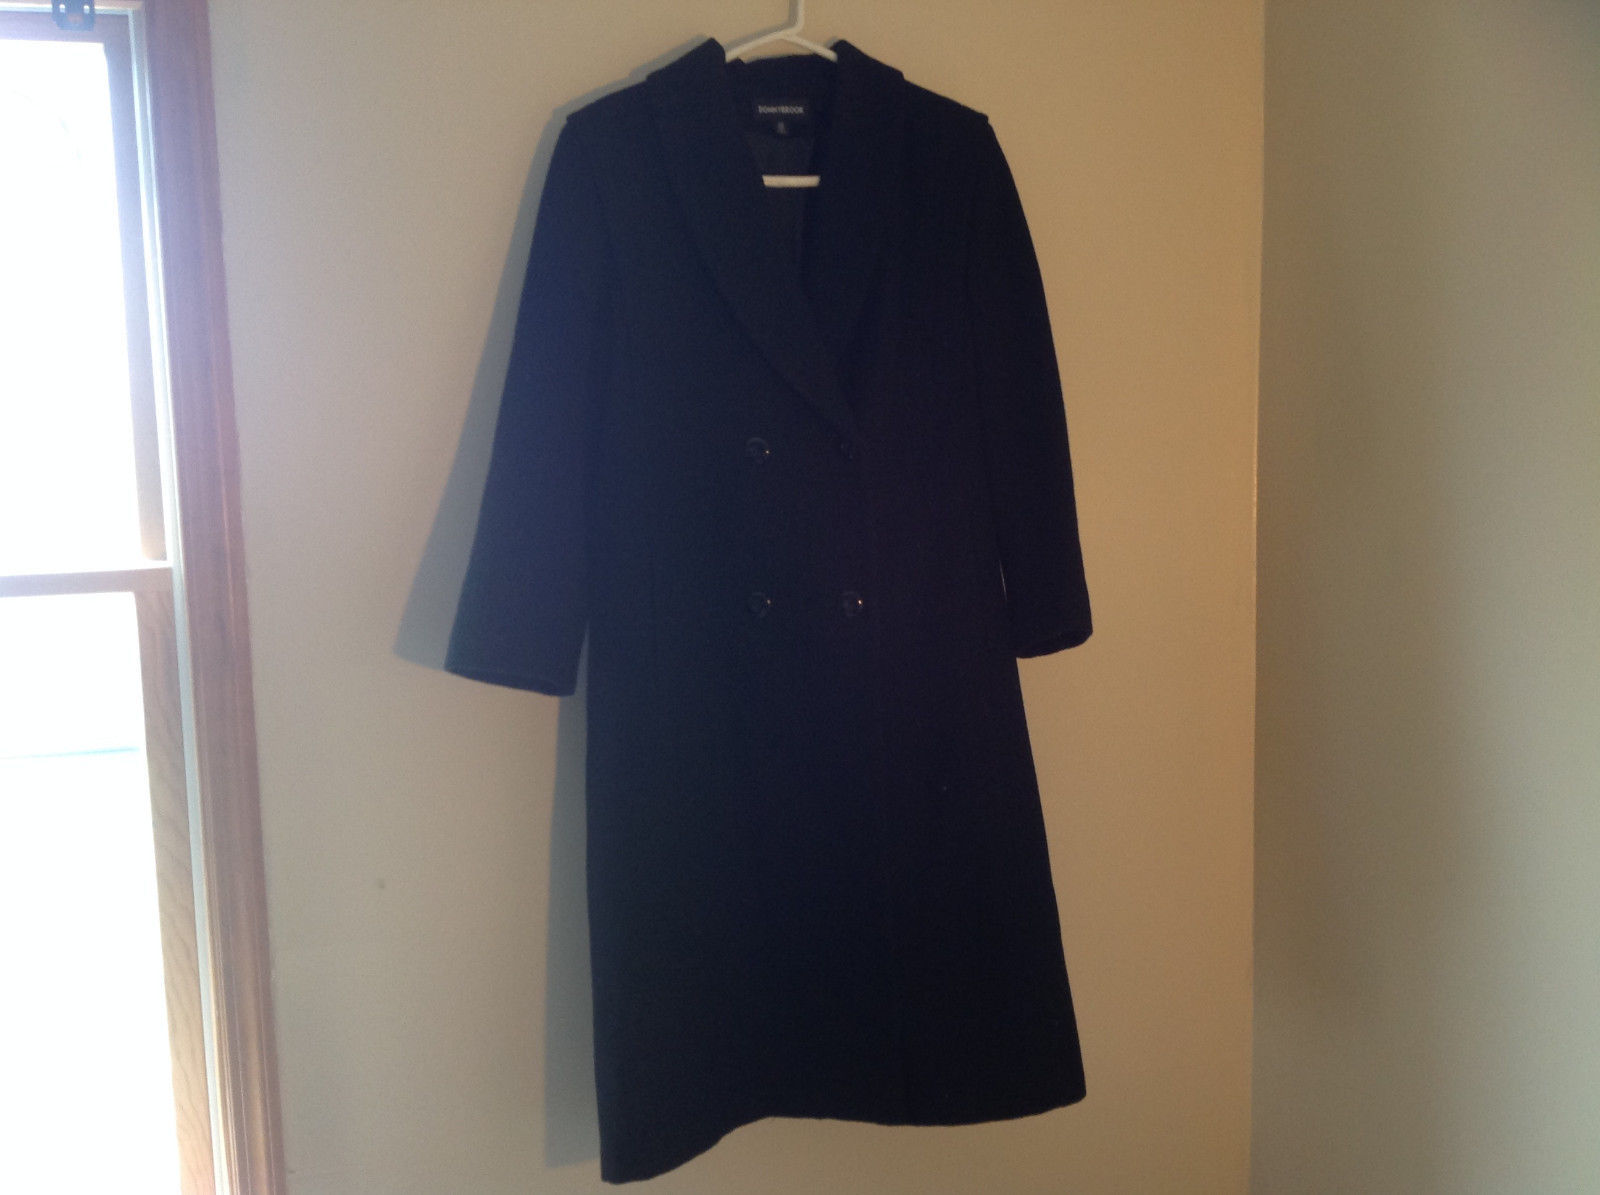 Donnybrook Black Double Breasted Long Length Peacoat Shoulder Pads Size 10P